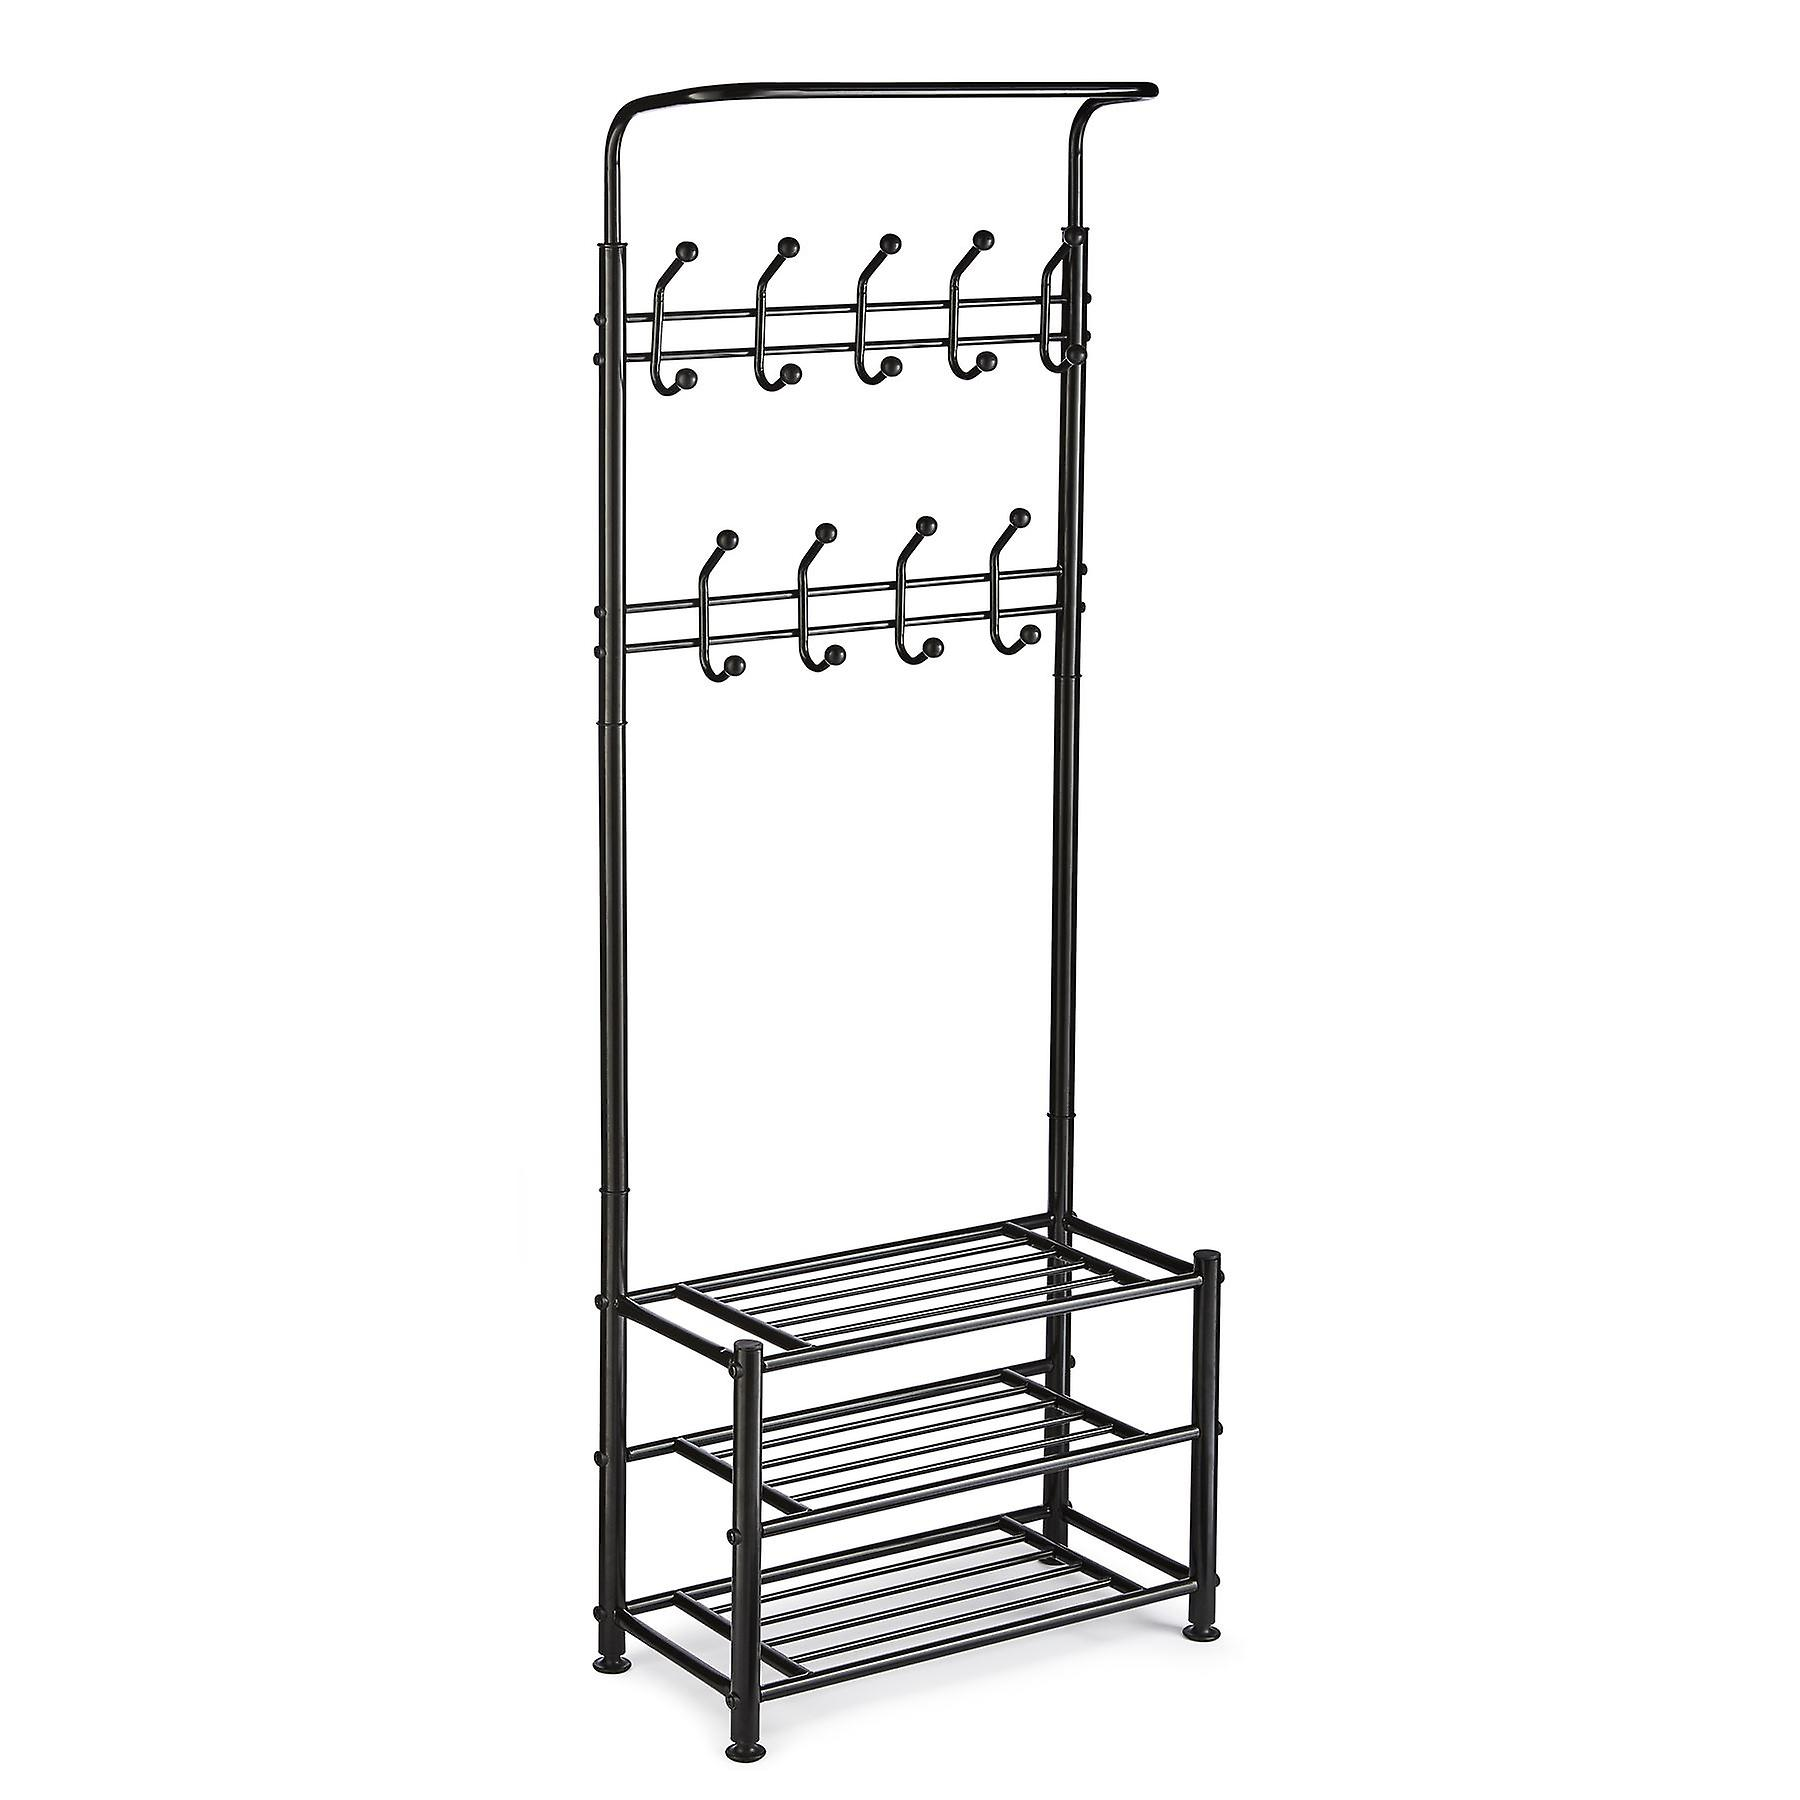 Multi Purpose Stand 18 Hooks For Clothes Shoes Hats Bags - Black